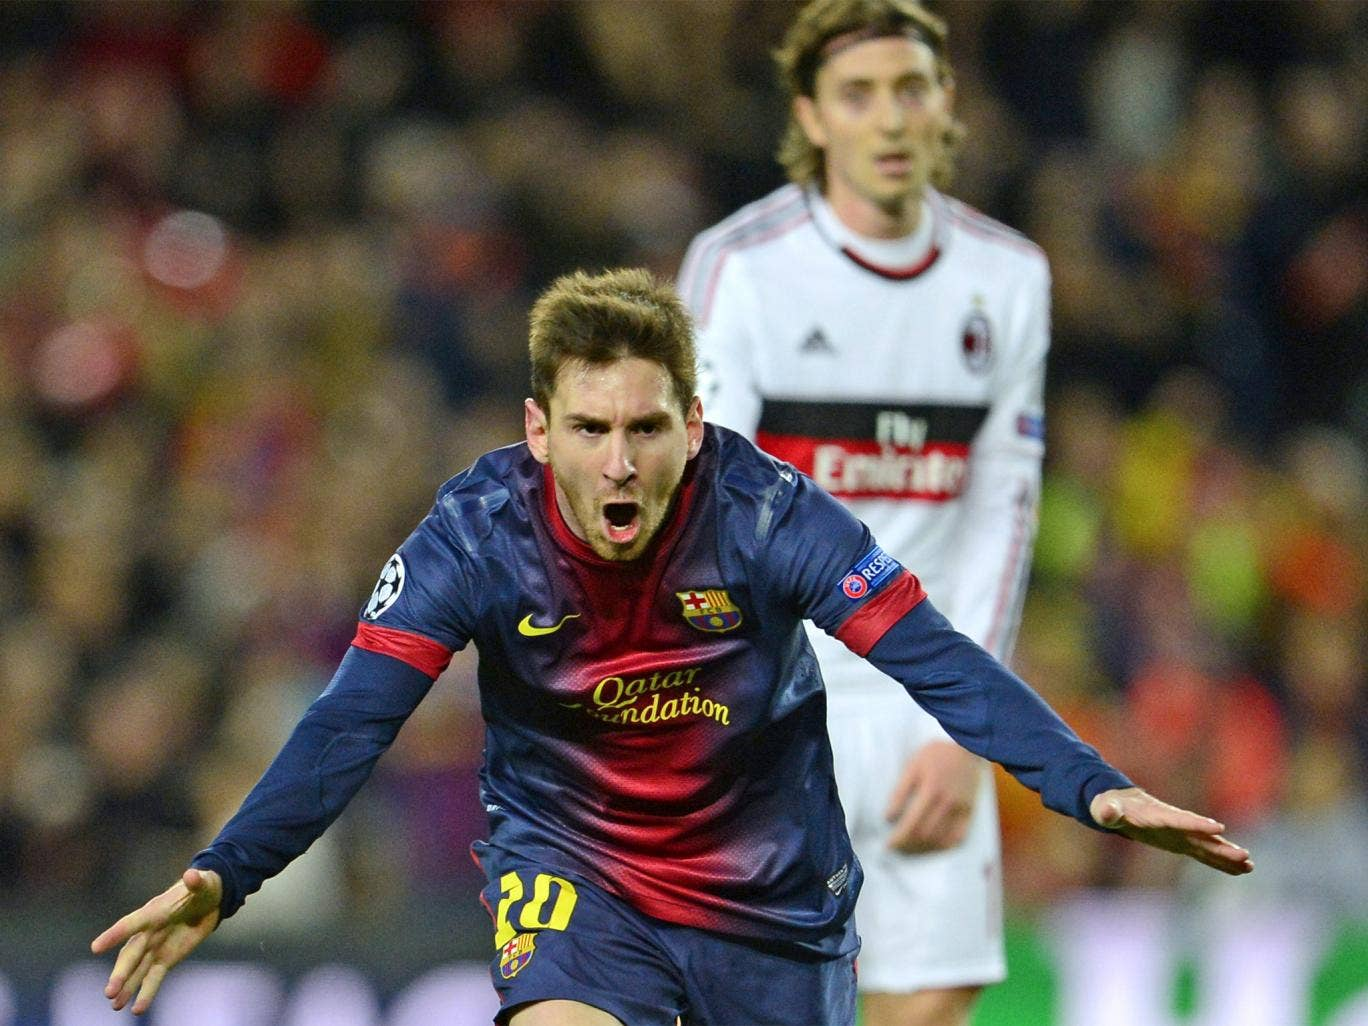 Messi made up for a disappointing showing at the San Siro by lighting up the Nou Camp